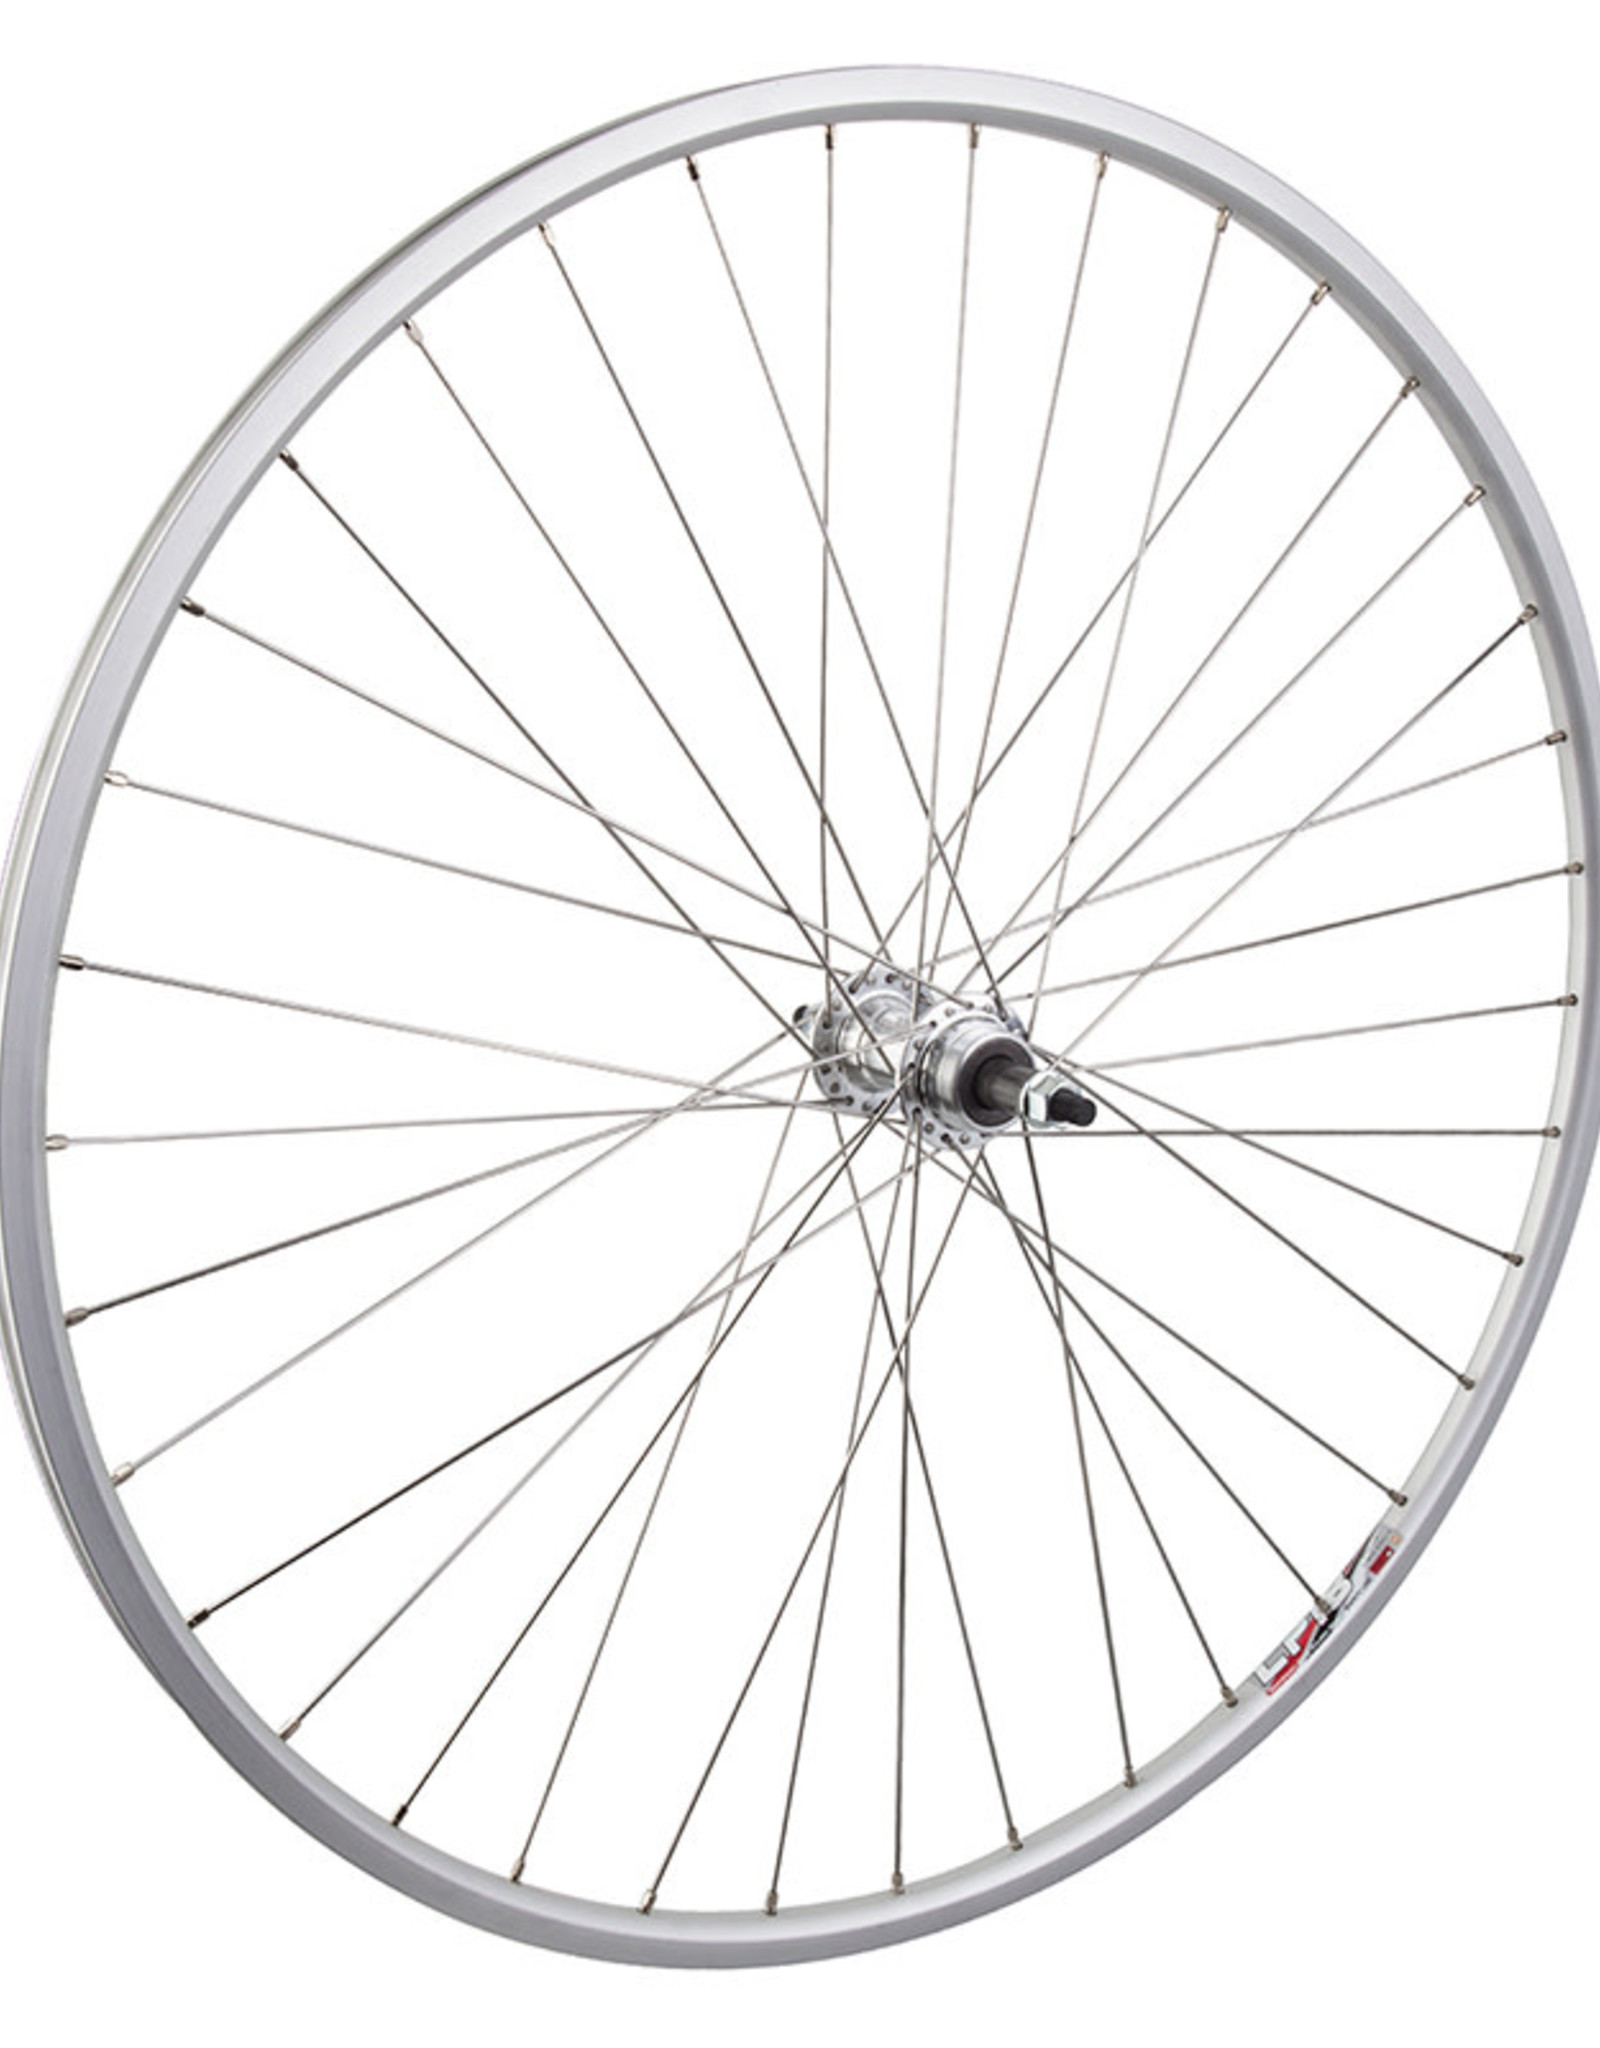 Wheel Master Alloy Road 27x1 Double Wall Silver Wheel